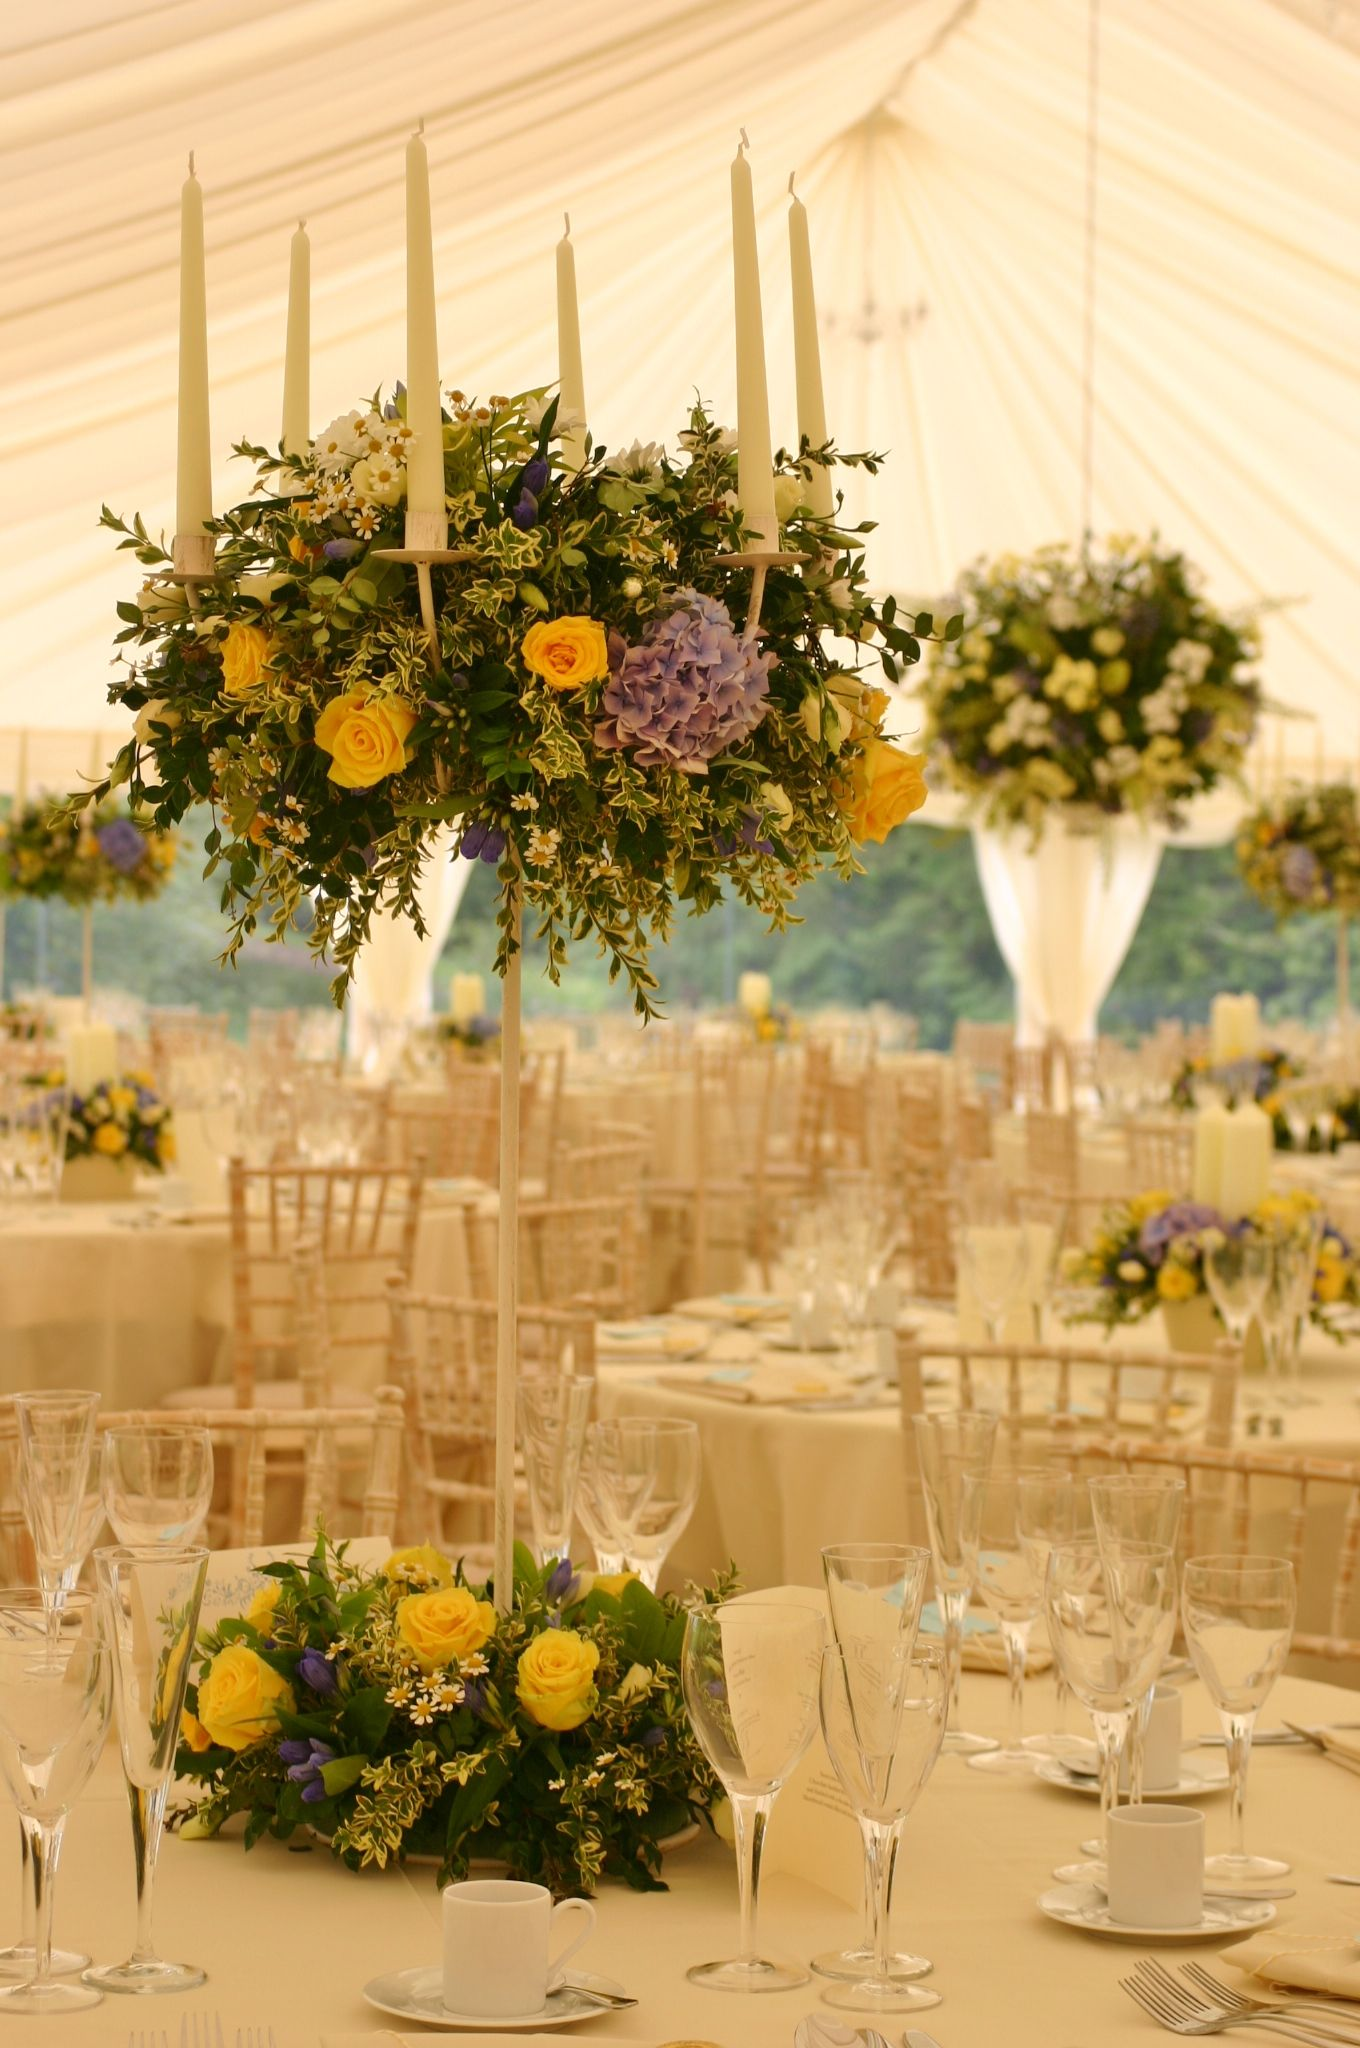 Ball Table Decorations Stunning Wedding Marquee With Floral Table Decorations And Hanging